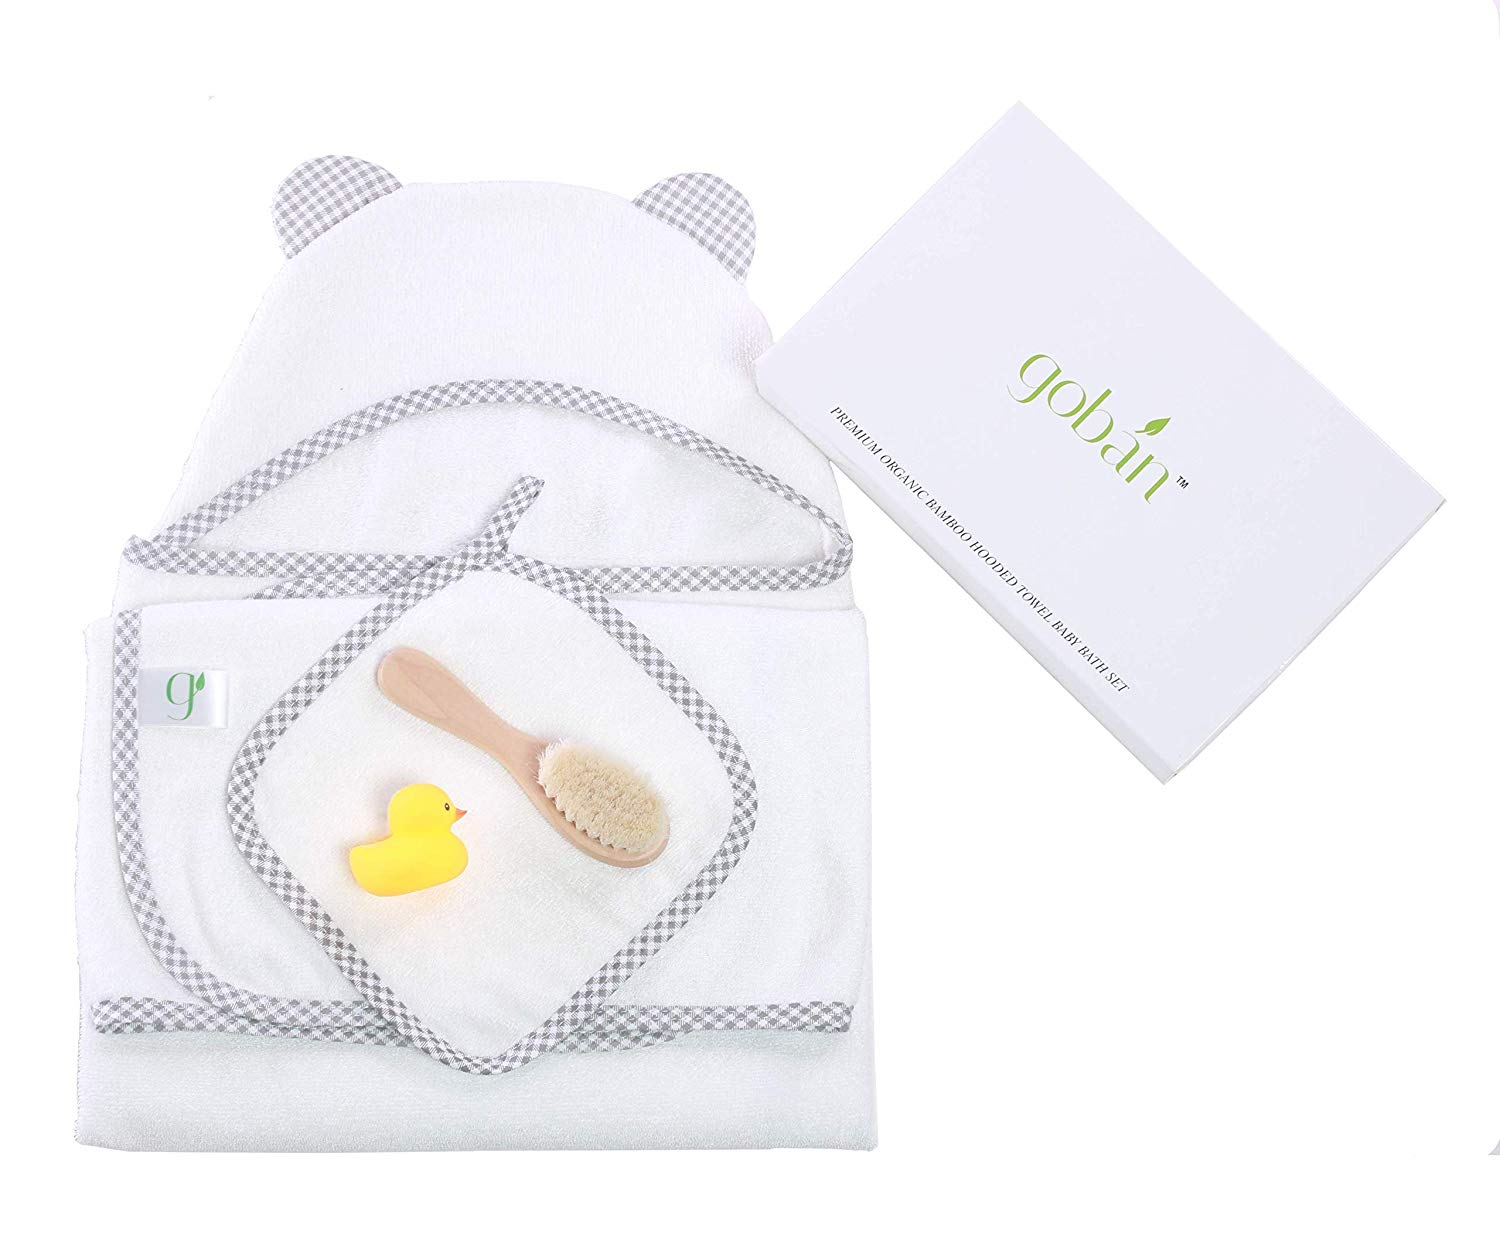 gobán Premium Organic Bamboo Hooded Towel Baby Bath Set | 600GSM Ultra Soft Unisex Hooded Towel Gift Set for Infants and Toddlers | Includes Hooded Towel, washcloth, Rubber Duck and Ultra Soft Brush